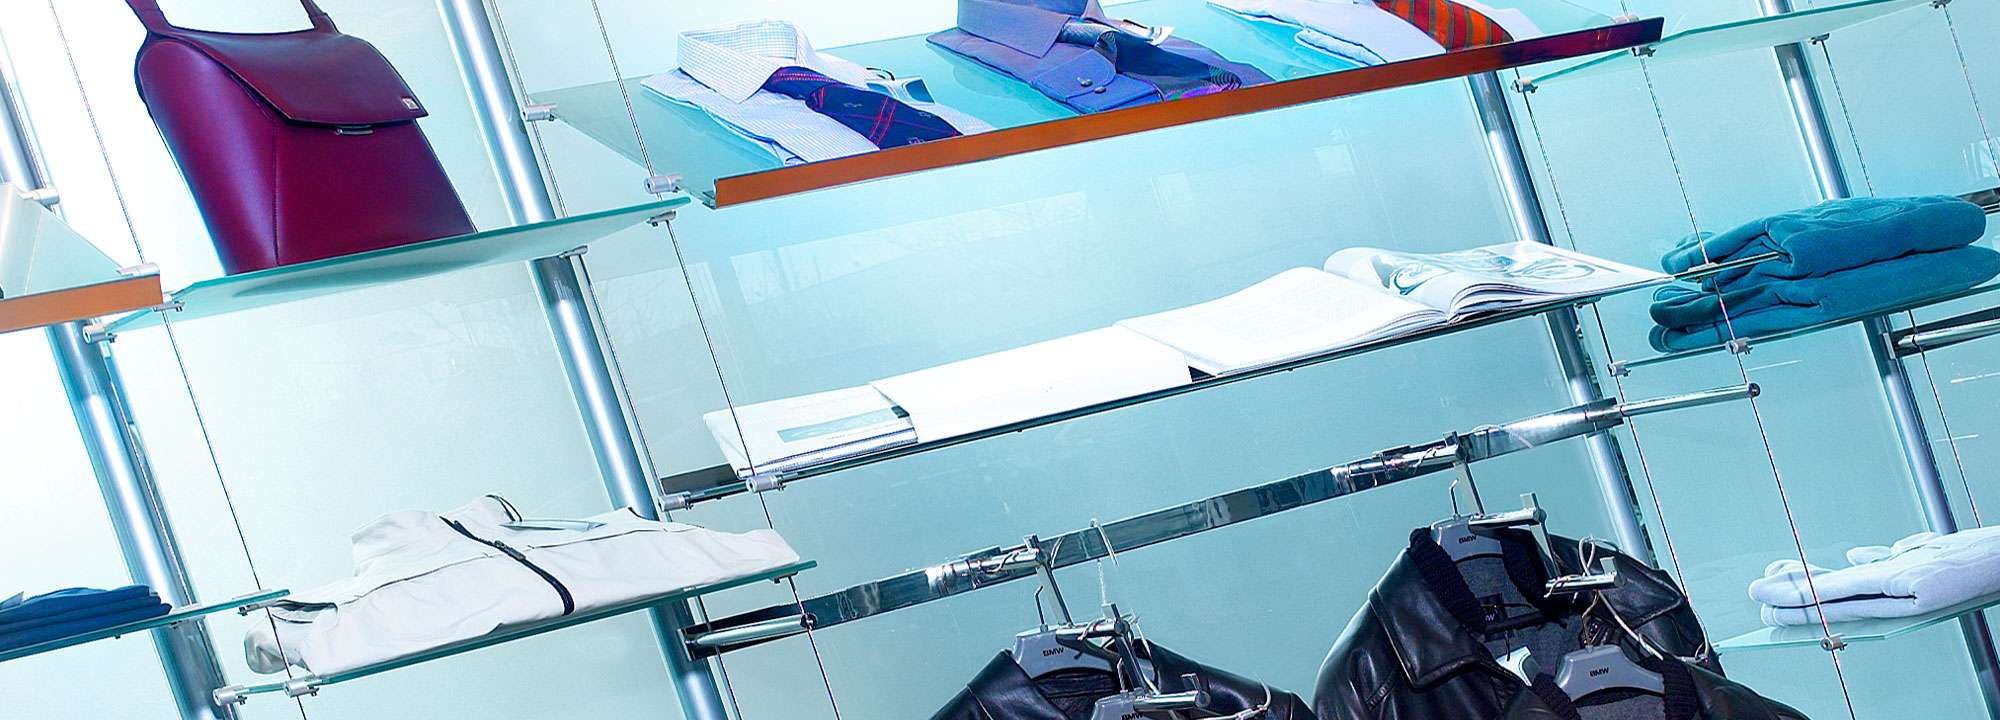 Retail interior display and shelving systems